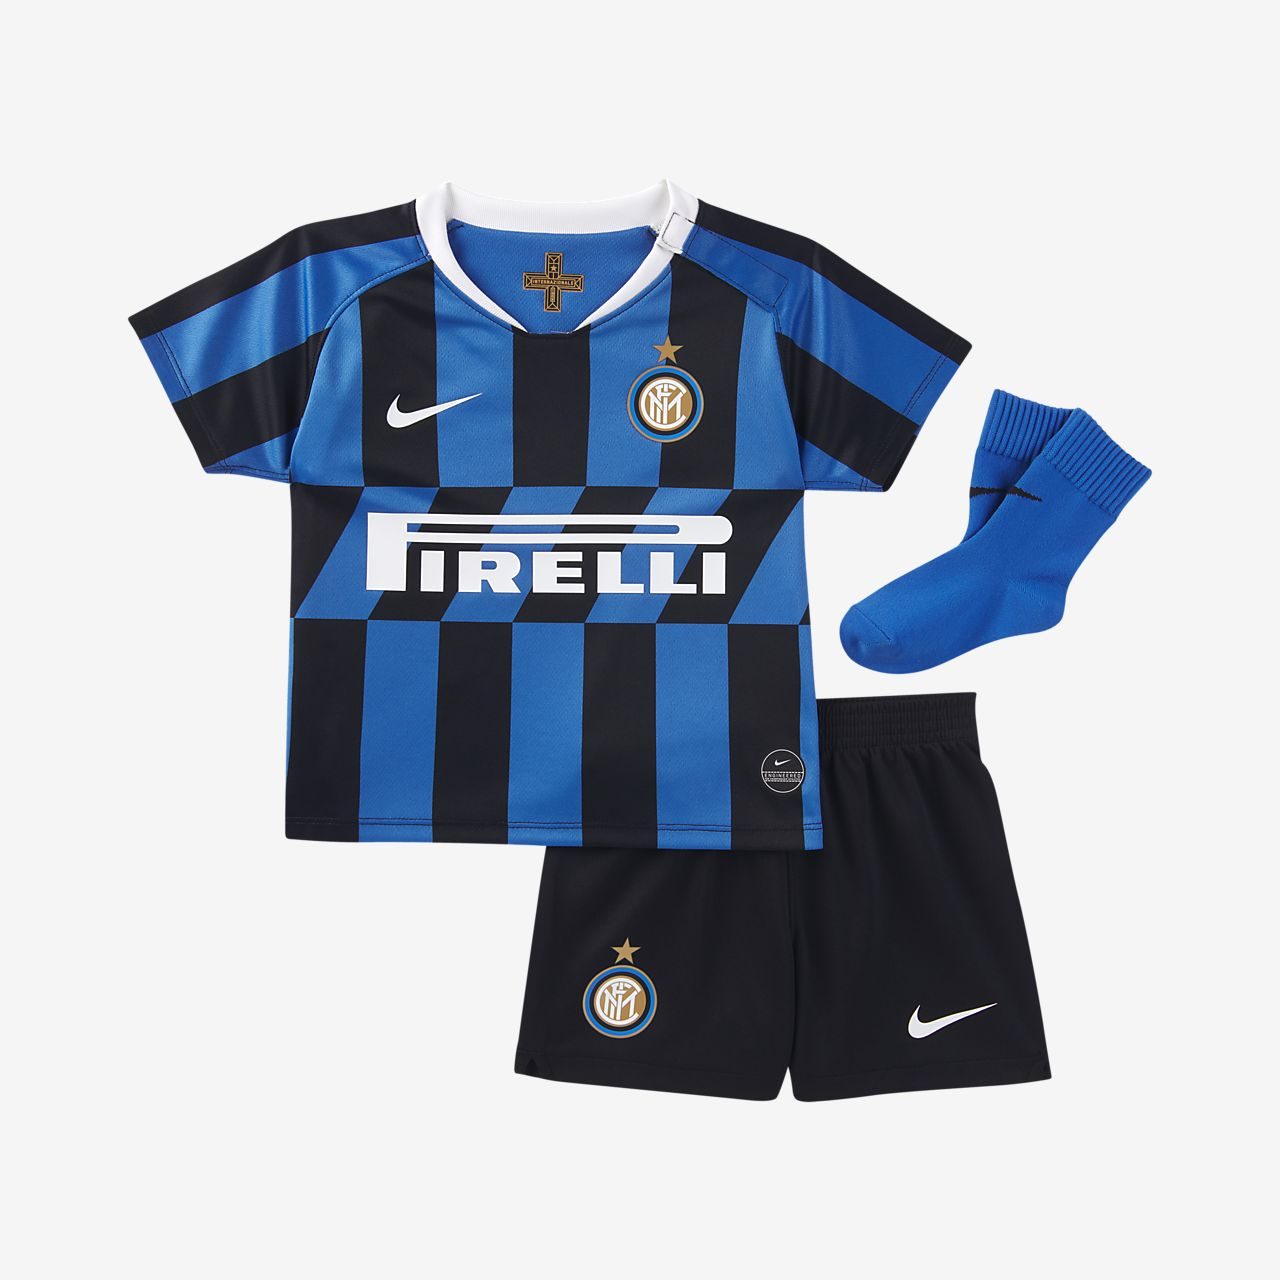 Kit de fútbol para bebé e infantil de local Inter Milan 2019/20